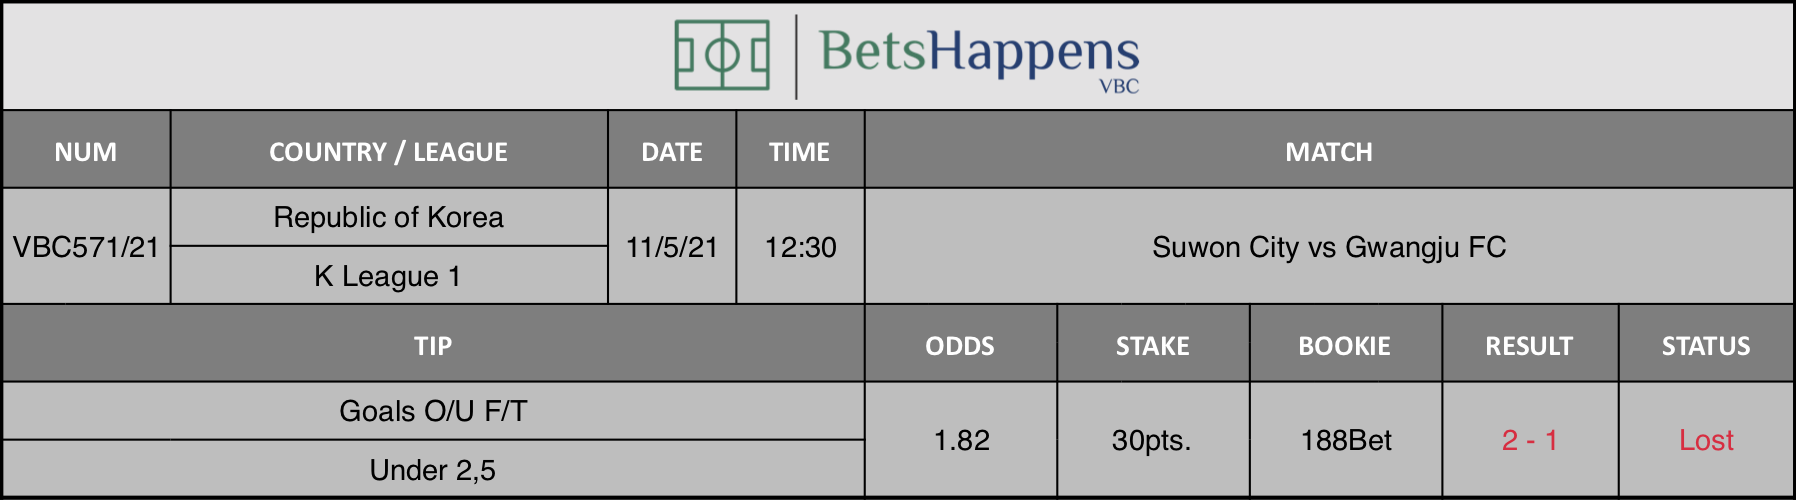 Results of our tip for the Suwon City vs Gwangju FC match where Goals O/U F/T Under 2,5 is recommended.